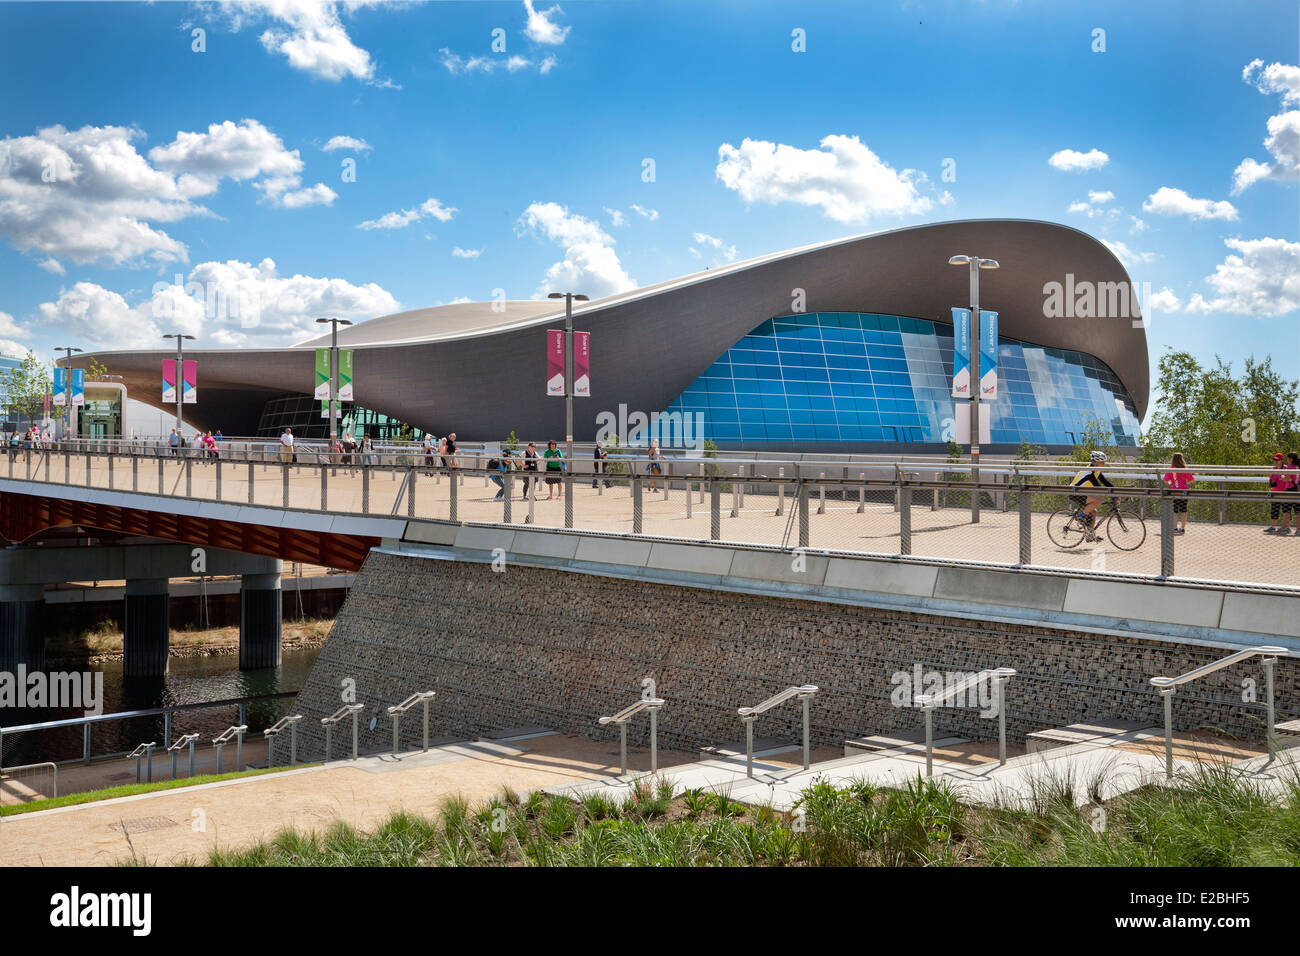 London Aquatics Centre At The Queen Elizabeth Olympic Park Stock Photo Royalty Free Image